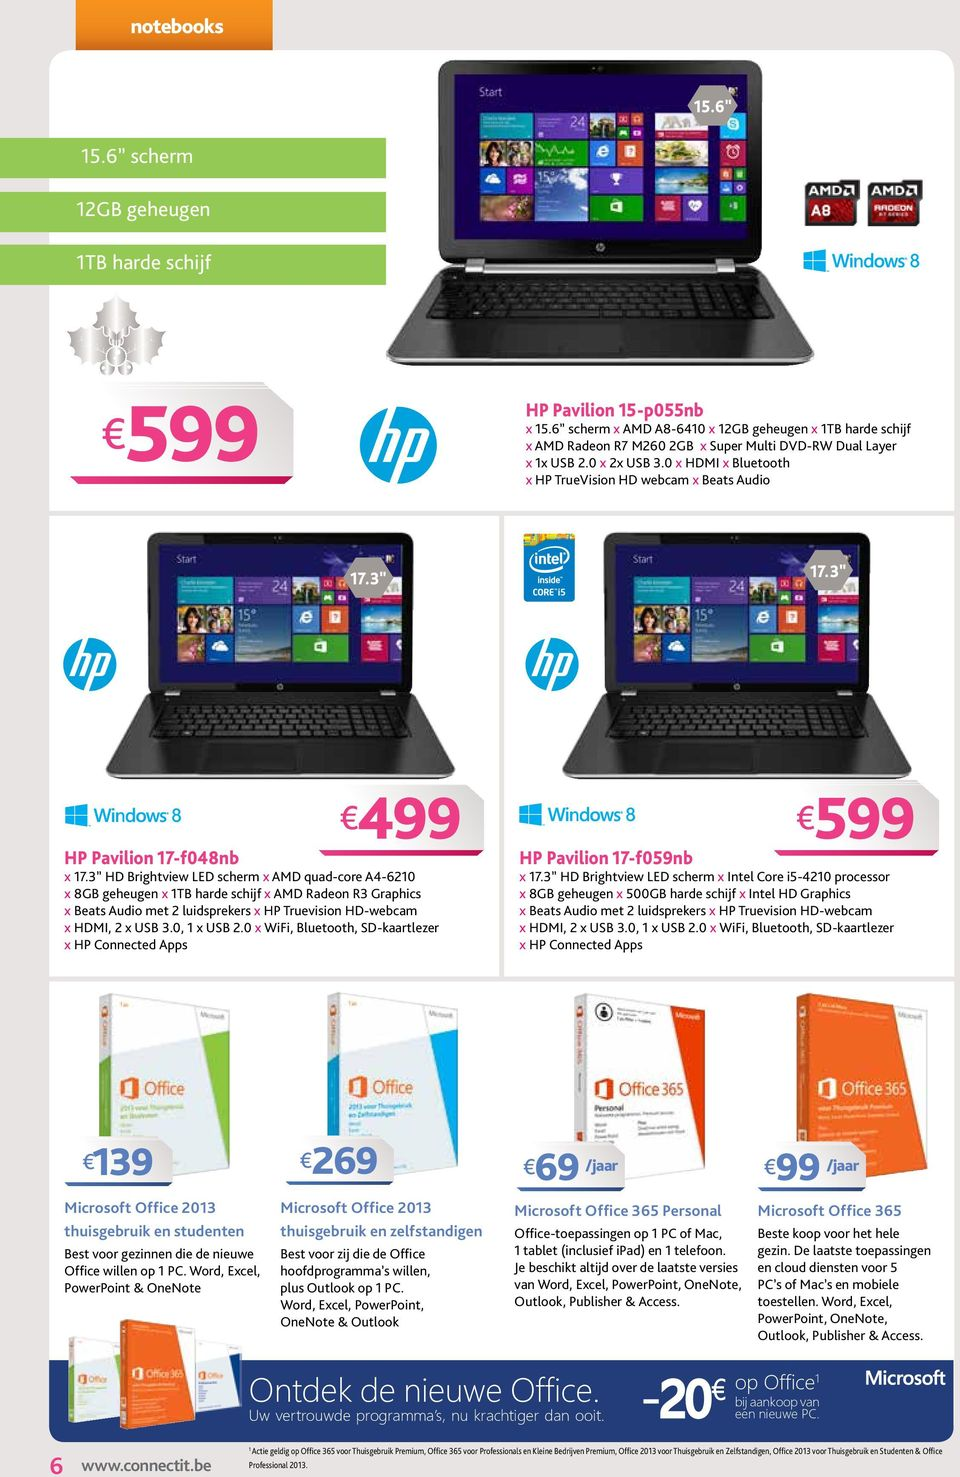 0 x HDMI x Bluetooth x HP TrueVision HD webcam x Beats Audio HP Pavilion 17-f048nb x 17.